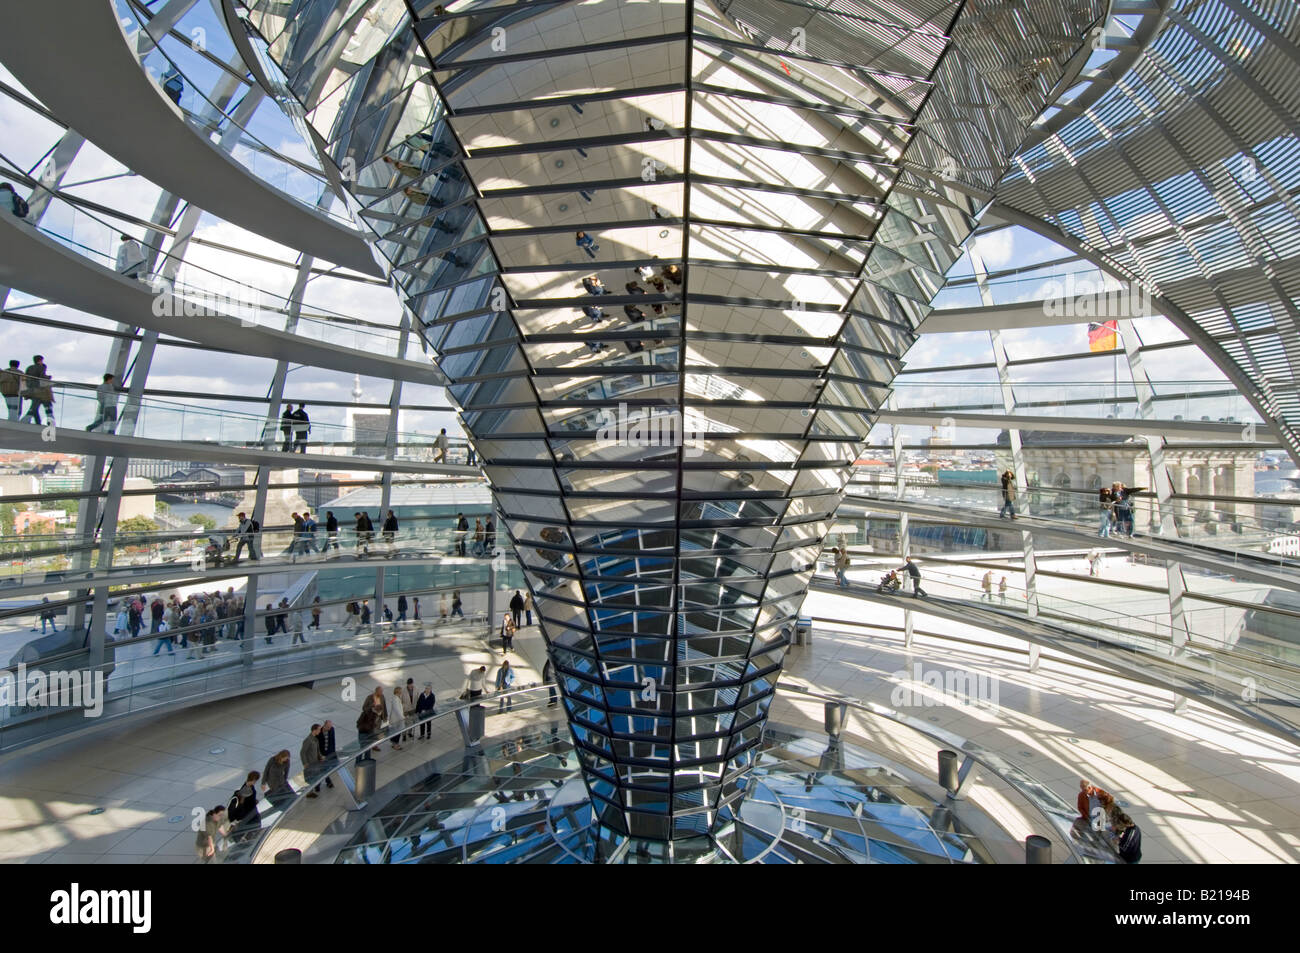 A wide angle view of tourists inside the dome on top of the Reichstag - the german parliment building. - Stock Image